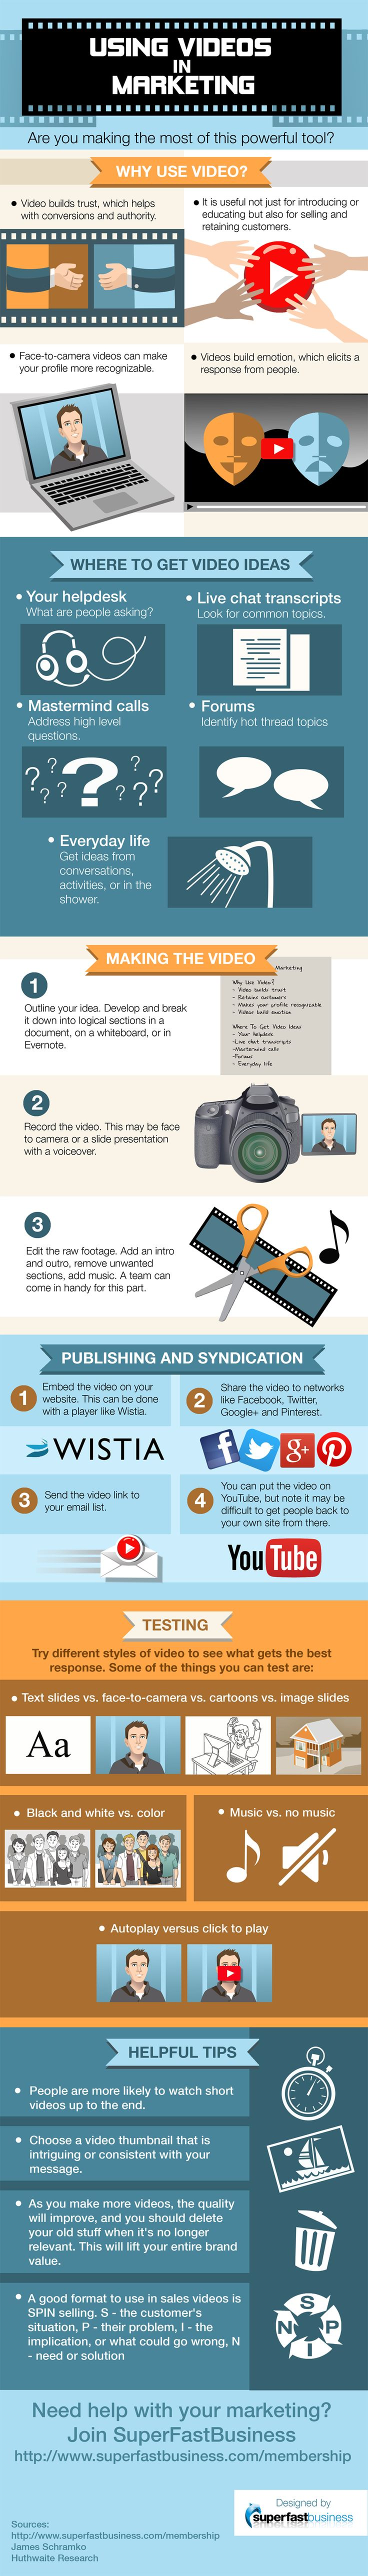 How to Use Videos In Marketing - #infographic #contentmarketing #videomarketing